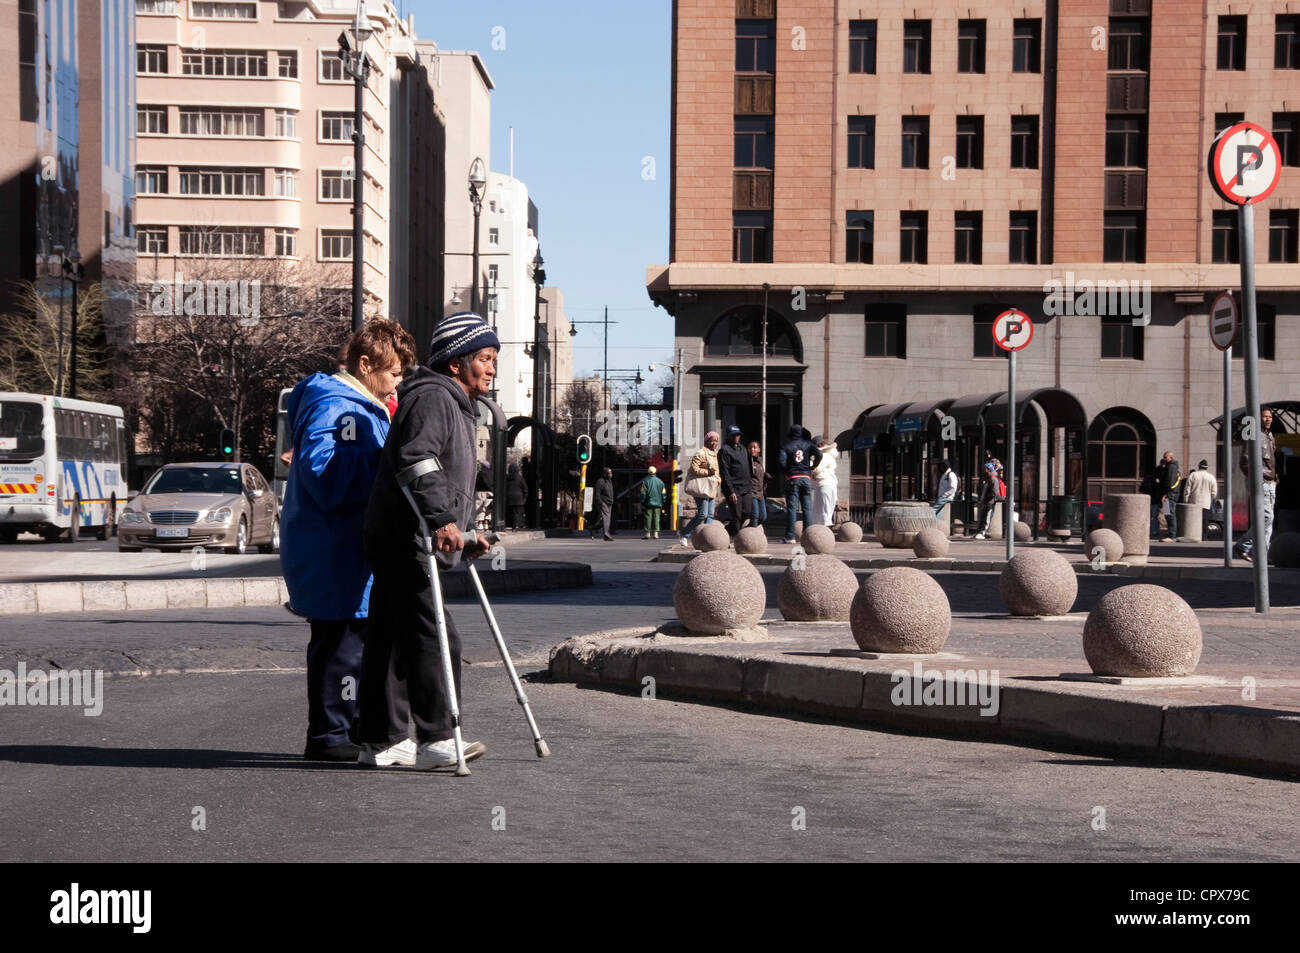 Landscape shot of two homeless people walking together through the city Stock Photo